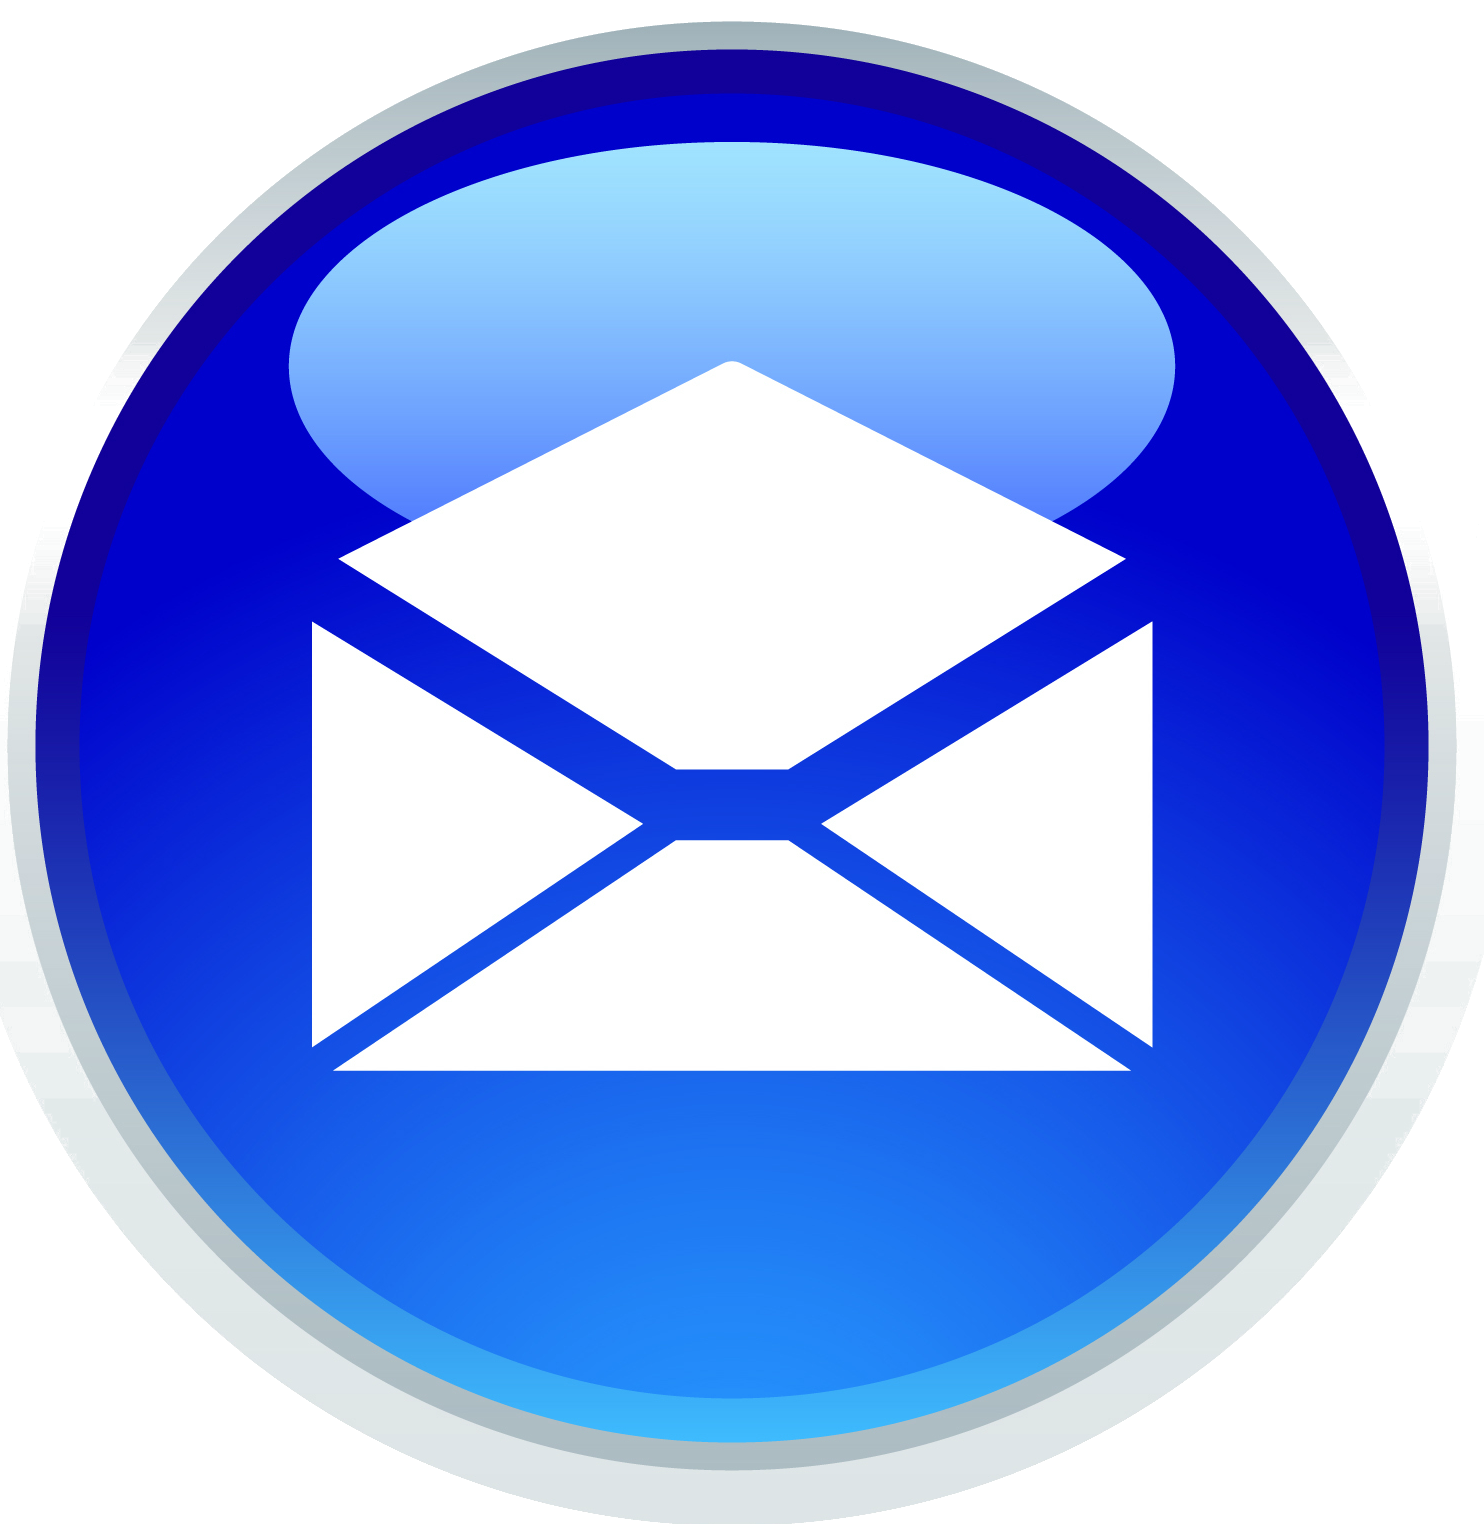 Blue Mobile Phone Transparent Icon - Web Icons PNG